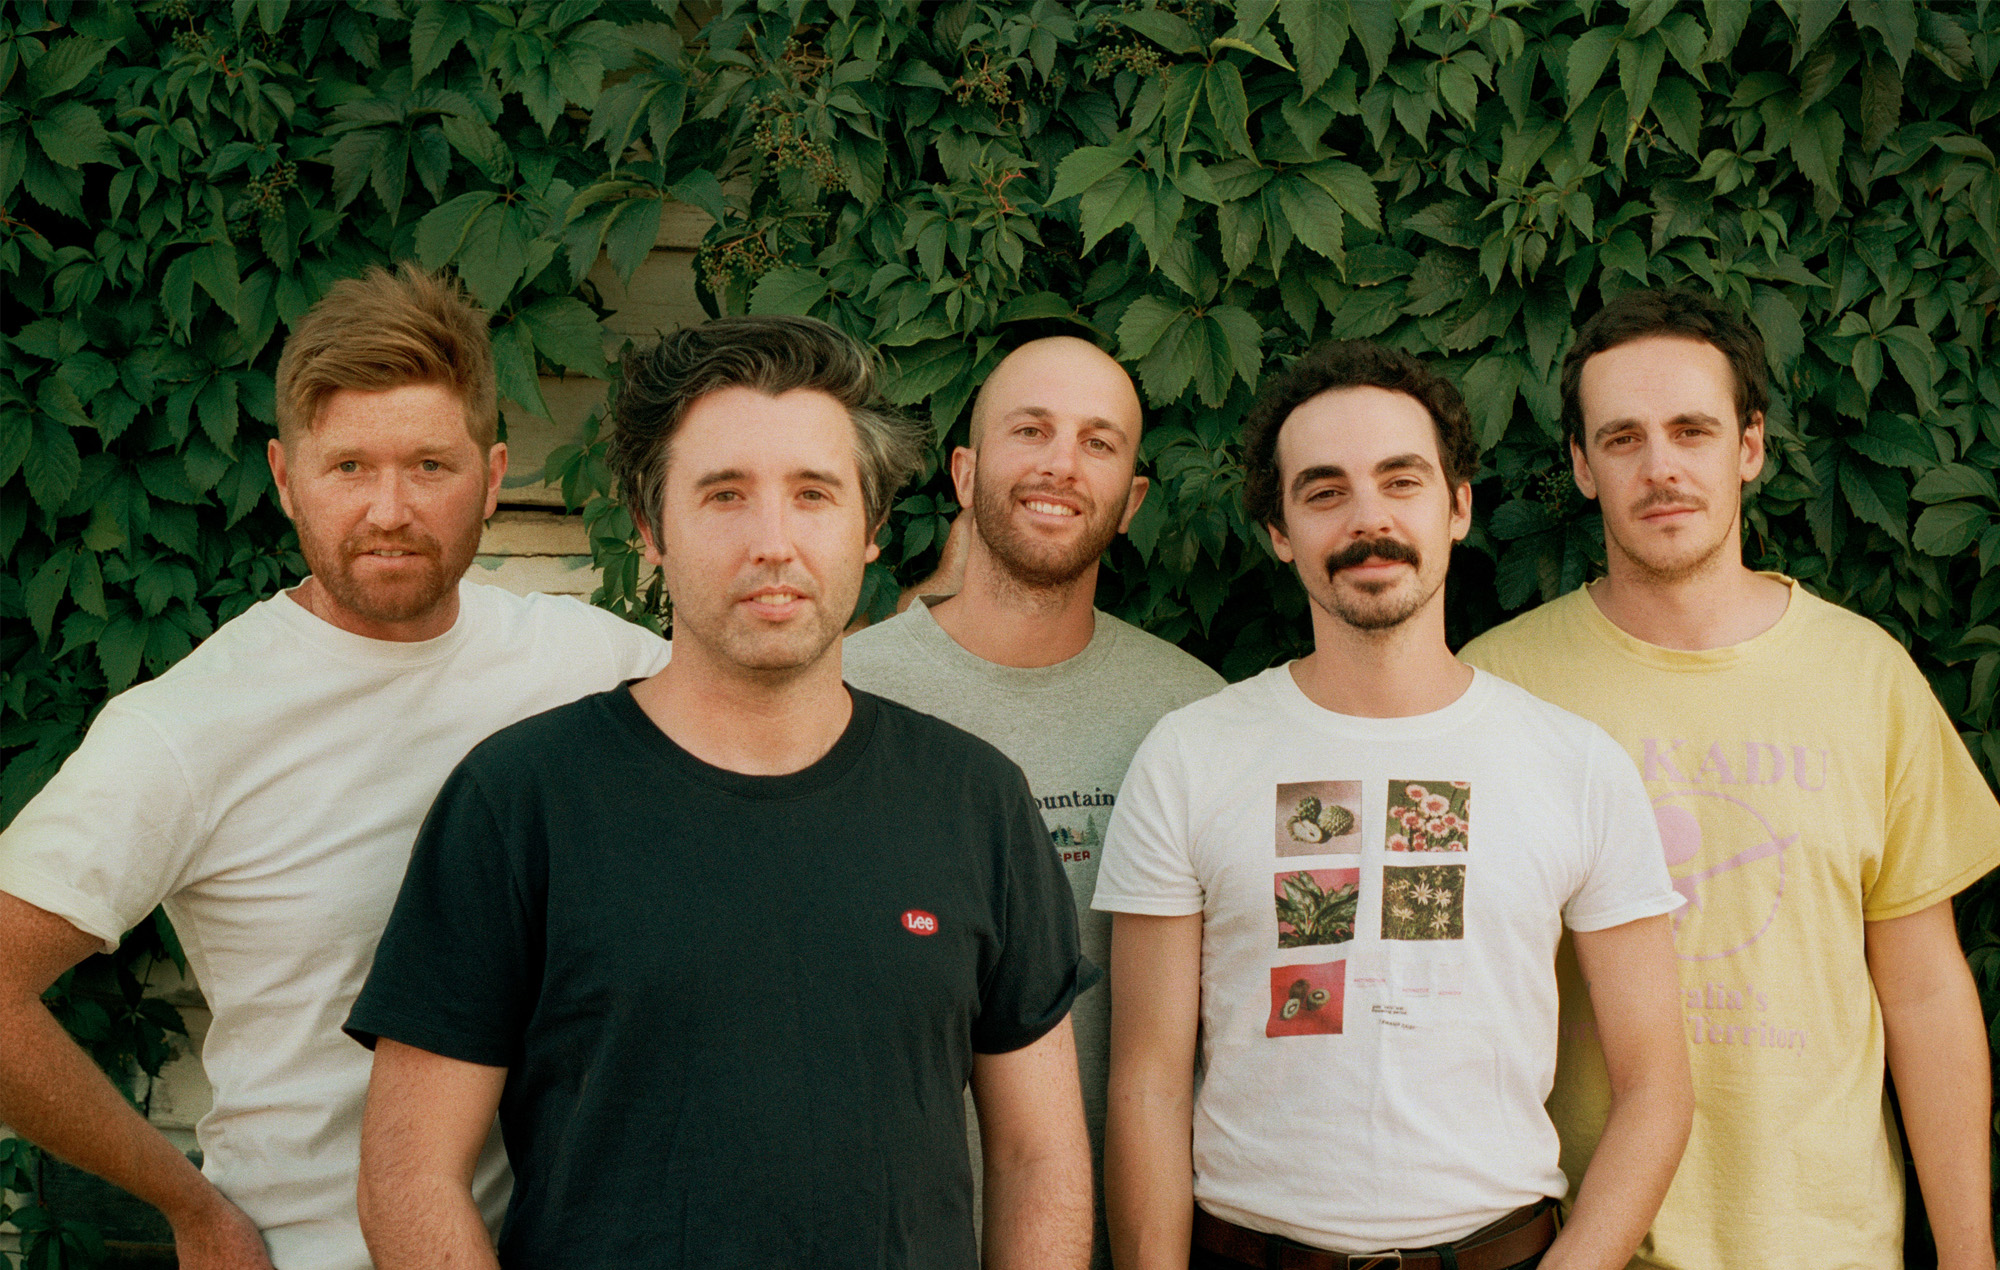 Rolling Blackouts Coastal Fever – 'Sideways To New Italy' review: sunny indie hints at melancholia within